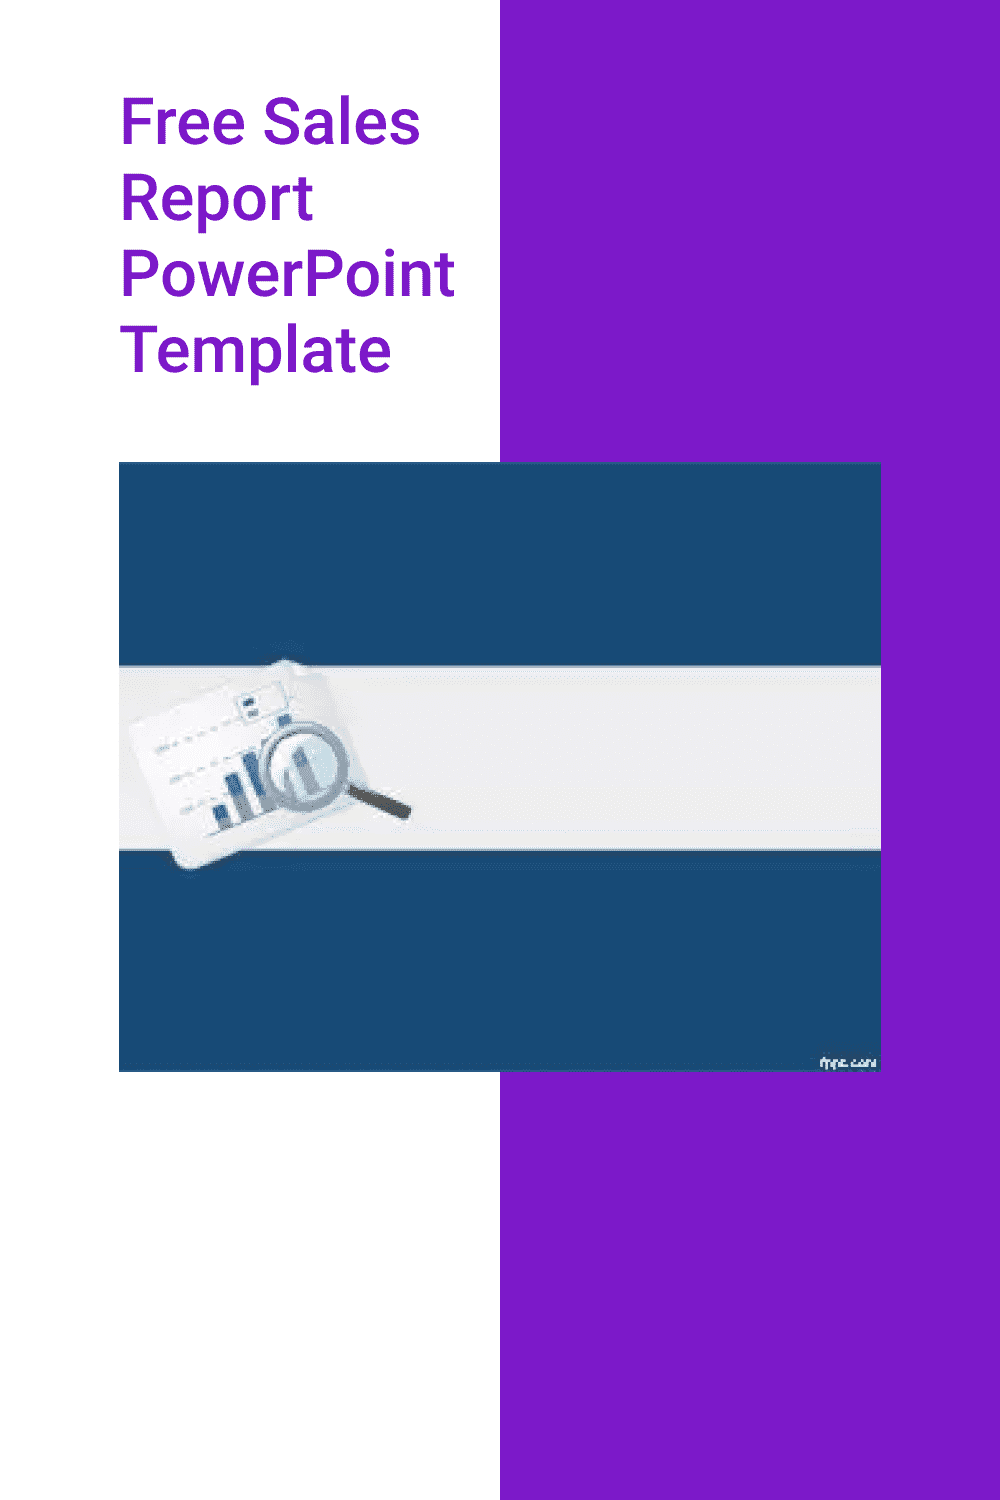 Free Sales Report PowerPoint Template.